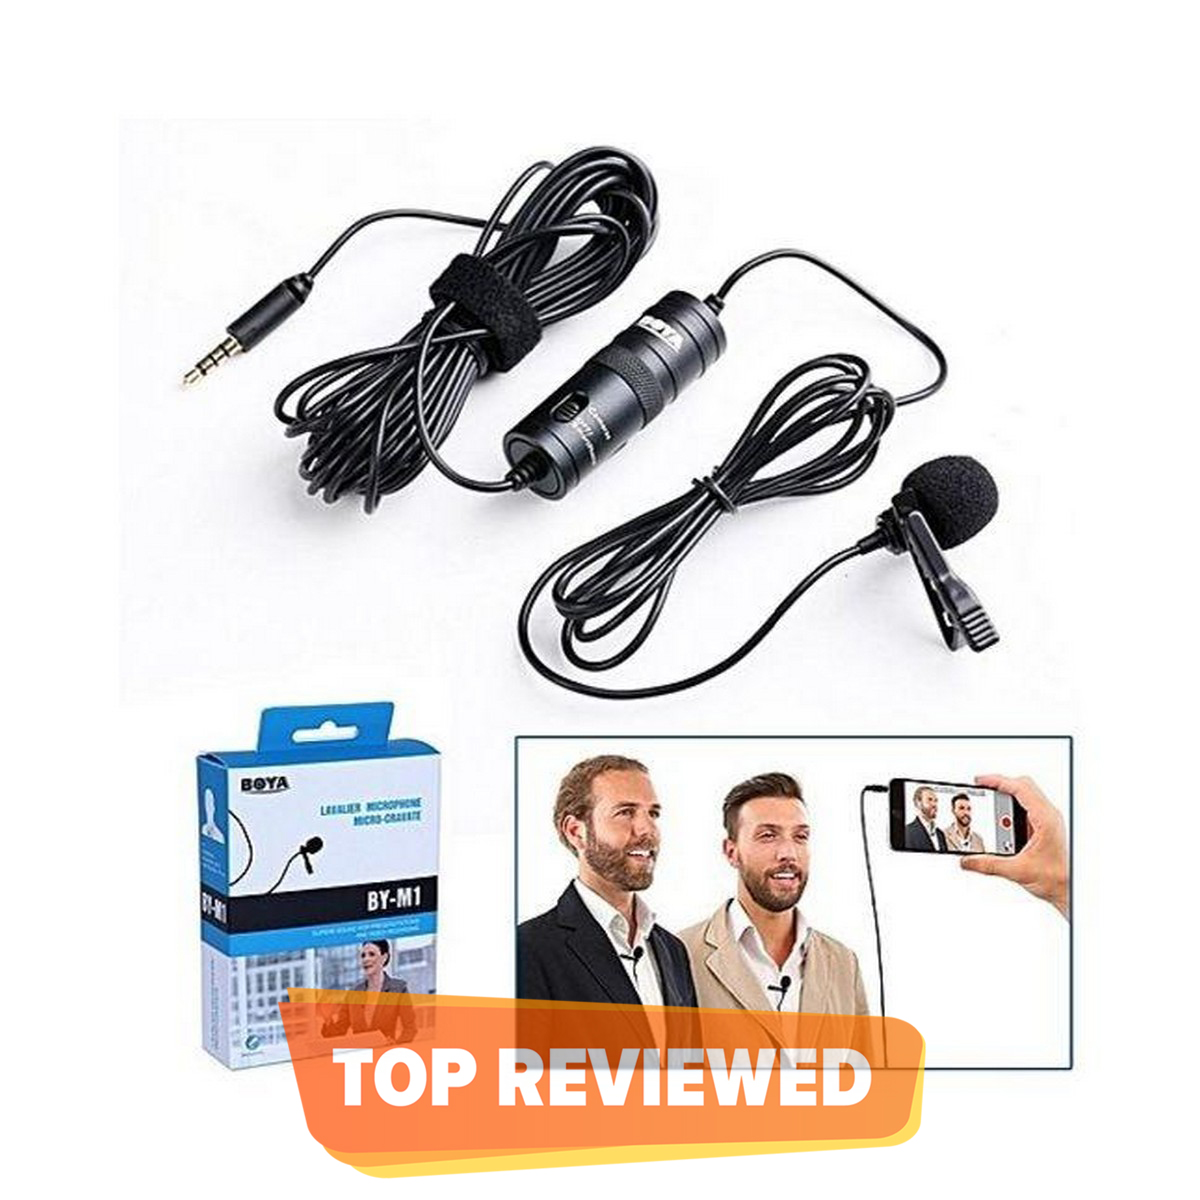 BY-M1 - Omnidirectional Lavalier Microphone for all Devices -